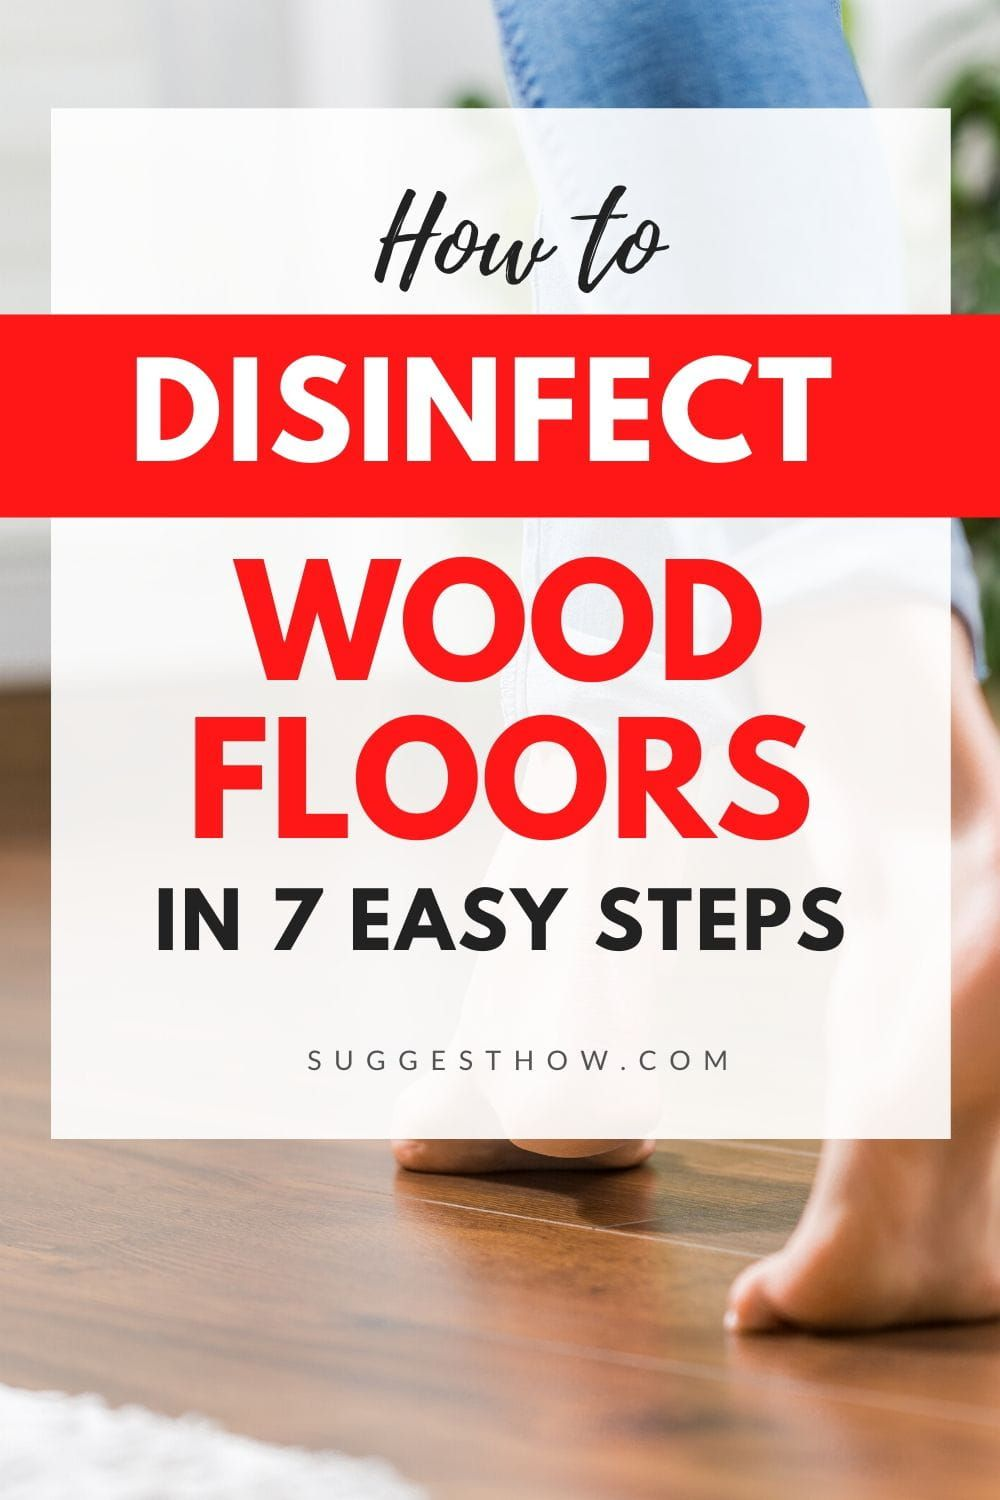 How To Disinfect Wood Floors 7 Step Guide To Floor Disinfection In 2020 Wood Floors Flooring Cleaning Wood